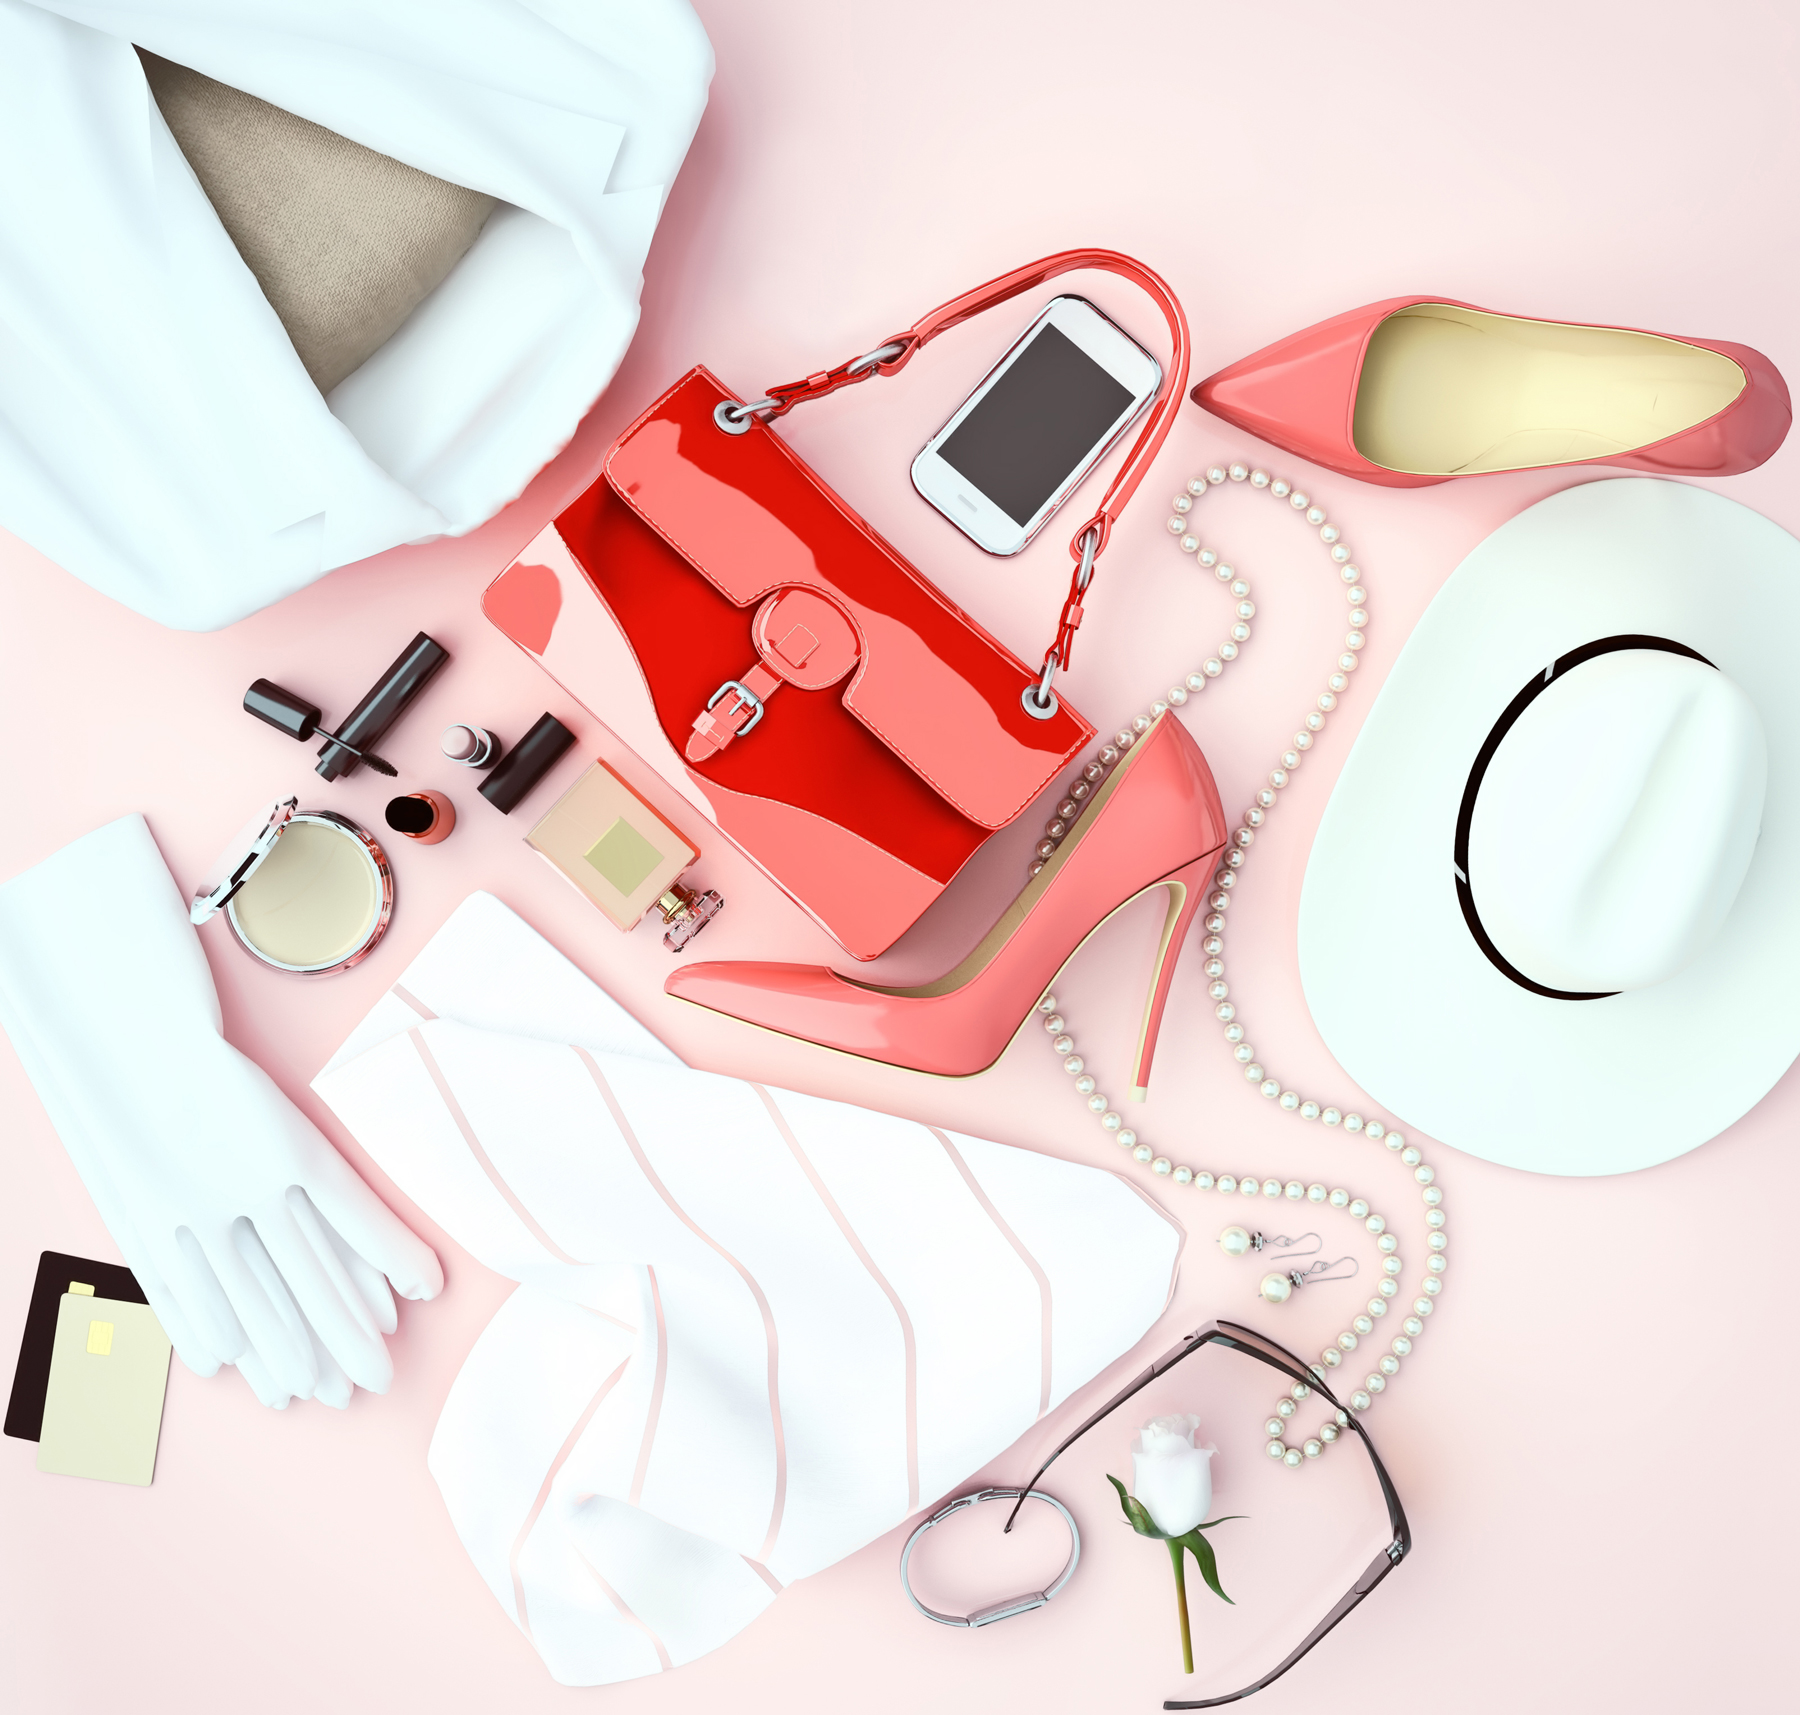 Fashion apps - phone with fashion, clothing accessories